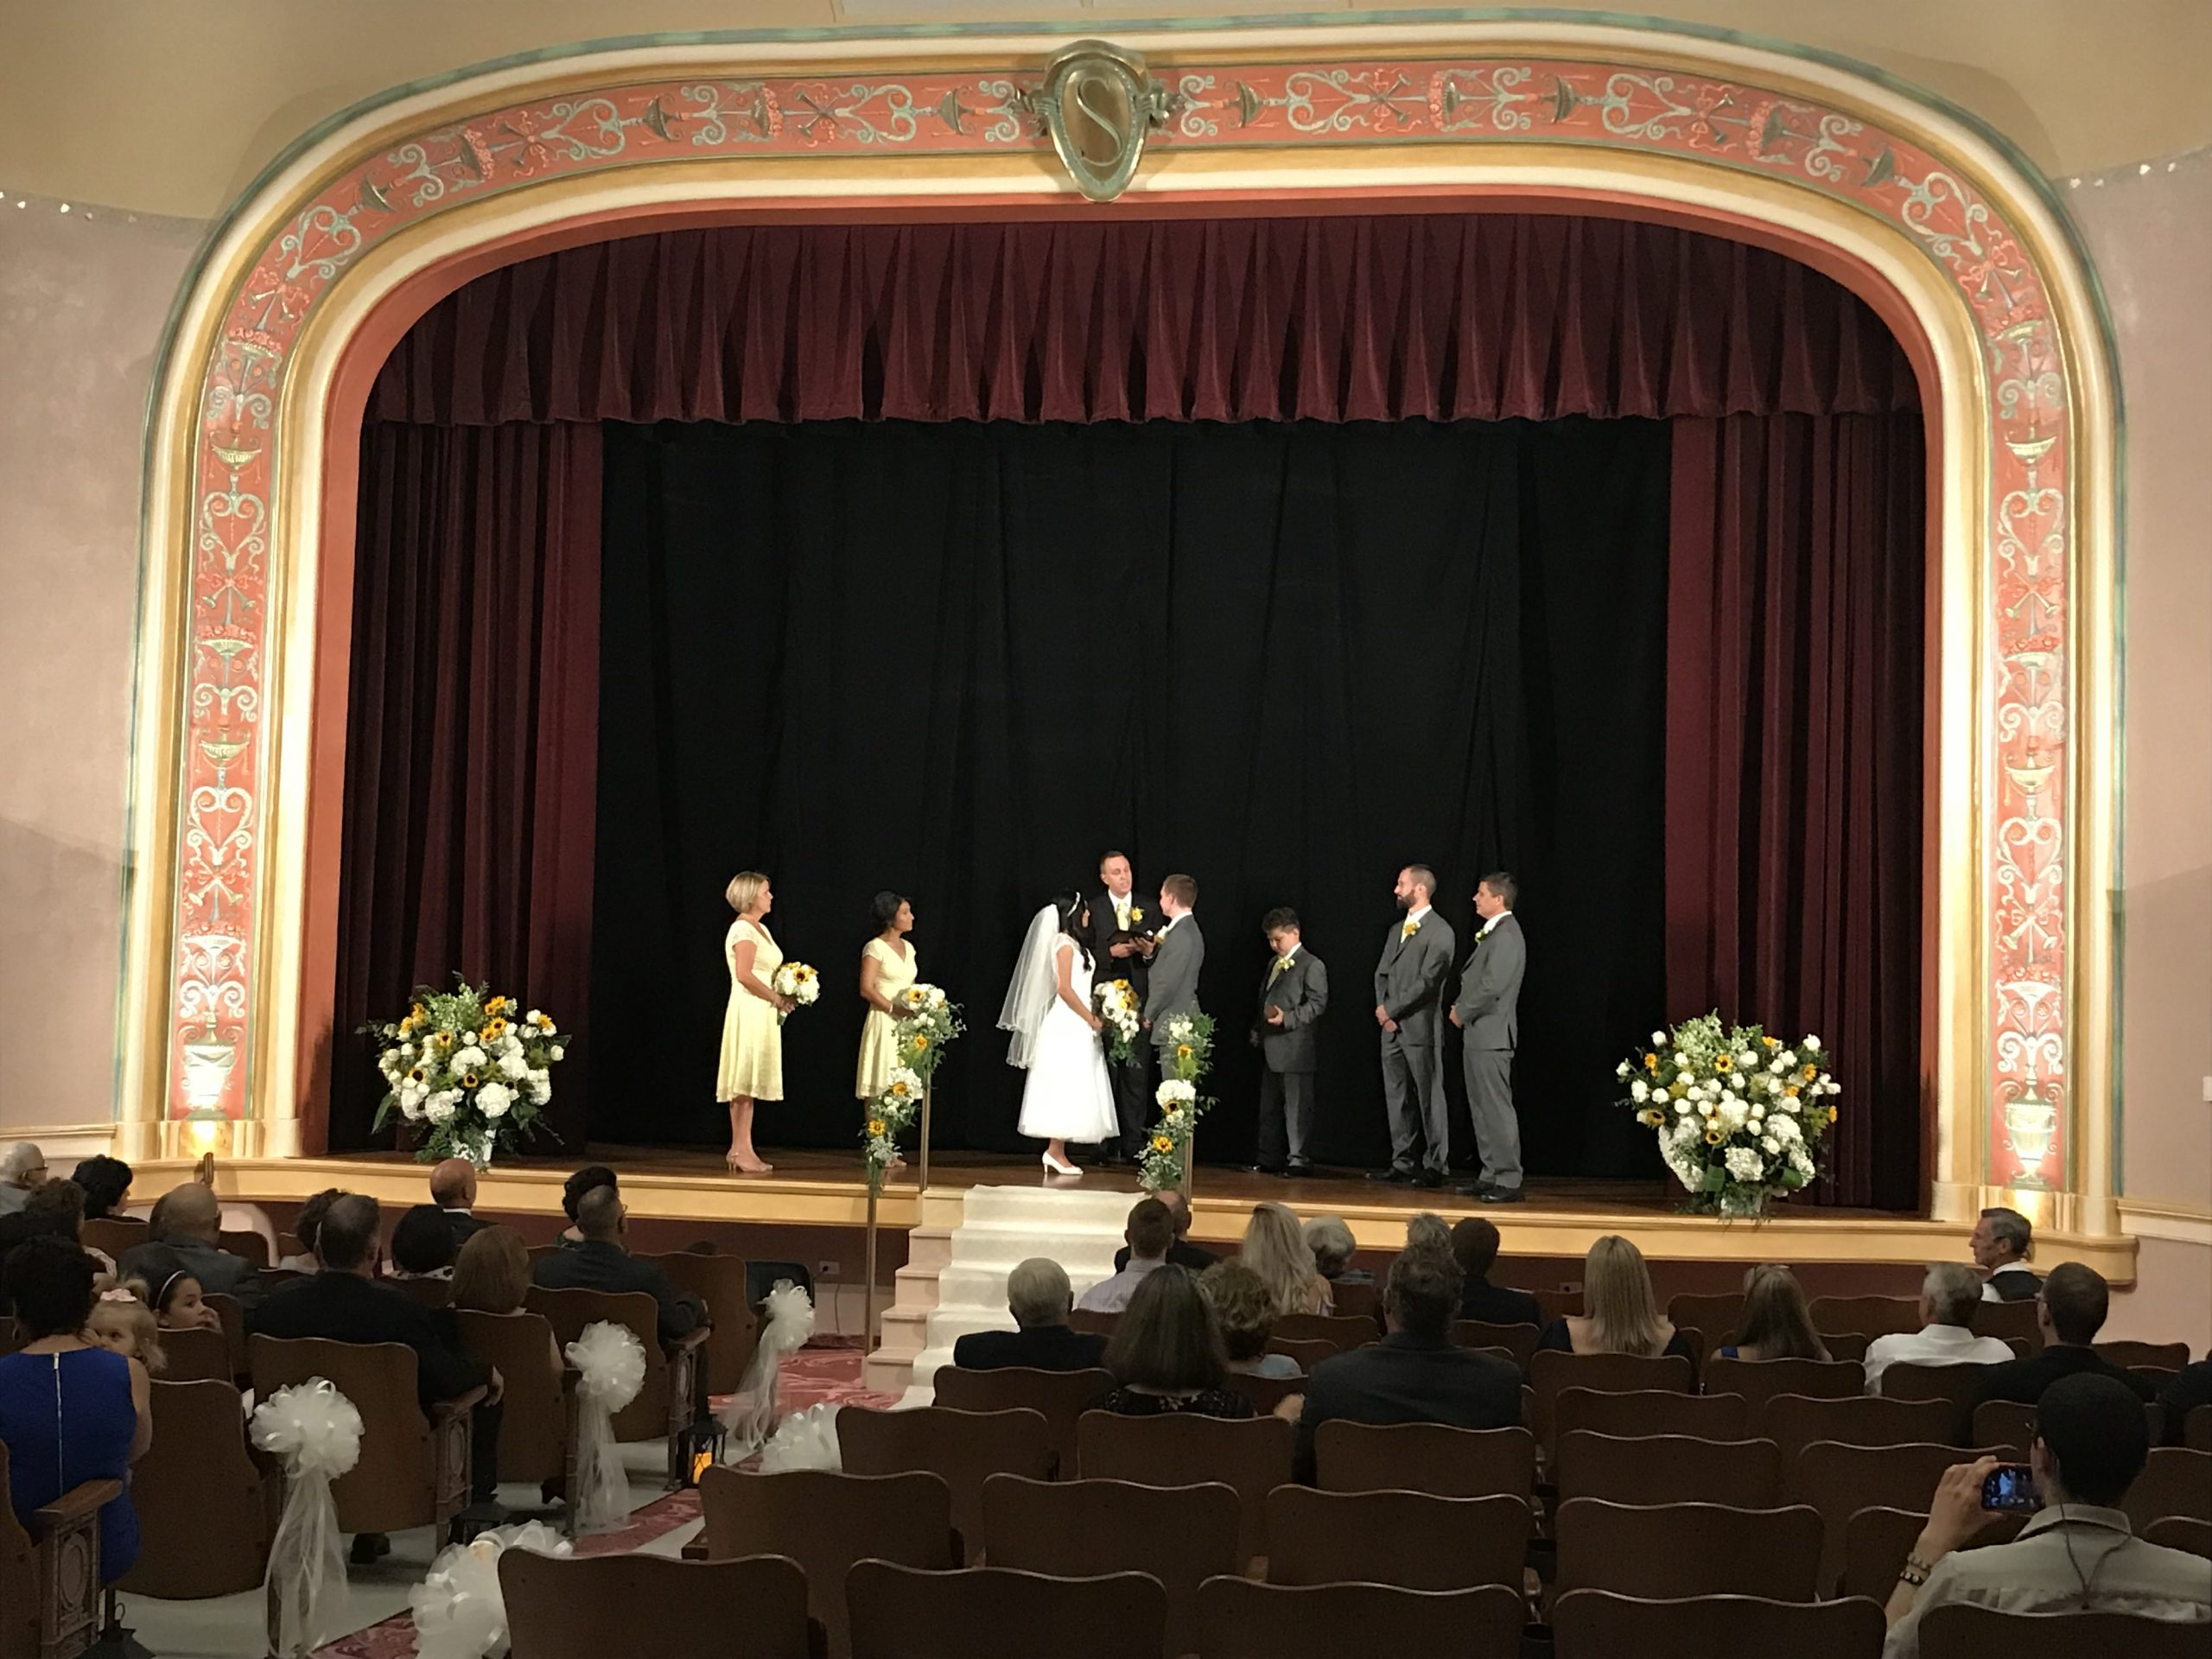 A bride and groom stand on the stage of our vintage Vaudeville theatre with several groomsmen and bridesmaids on either side. The stage is adorn with white flower and yellow sunflowers in large arrangements. Guests look on from the comfort of the theatre's comfy chairs.